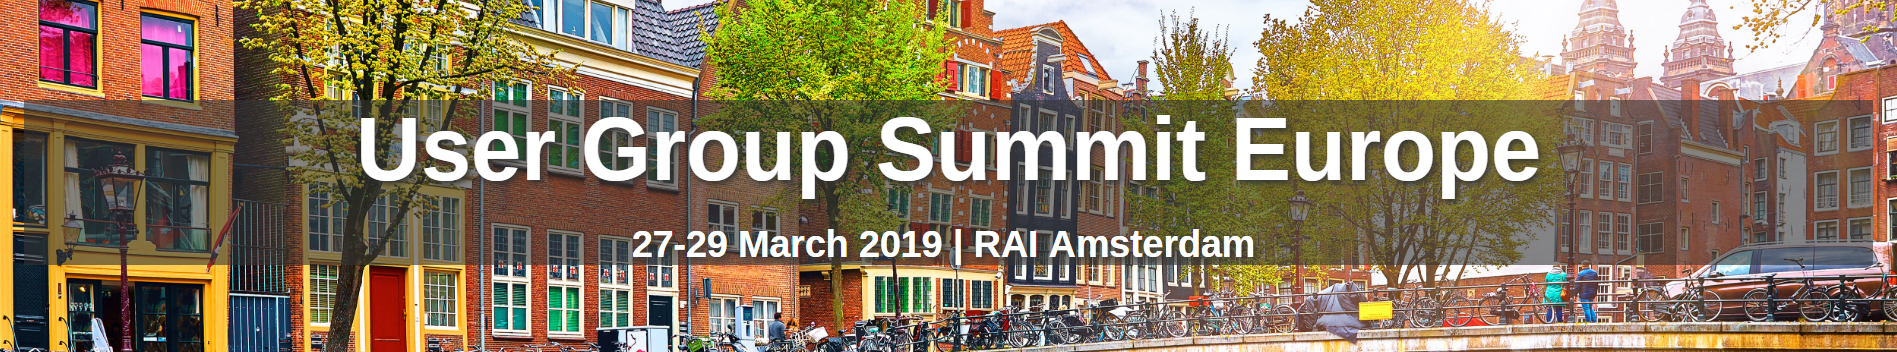 user group summit europe